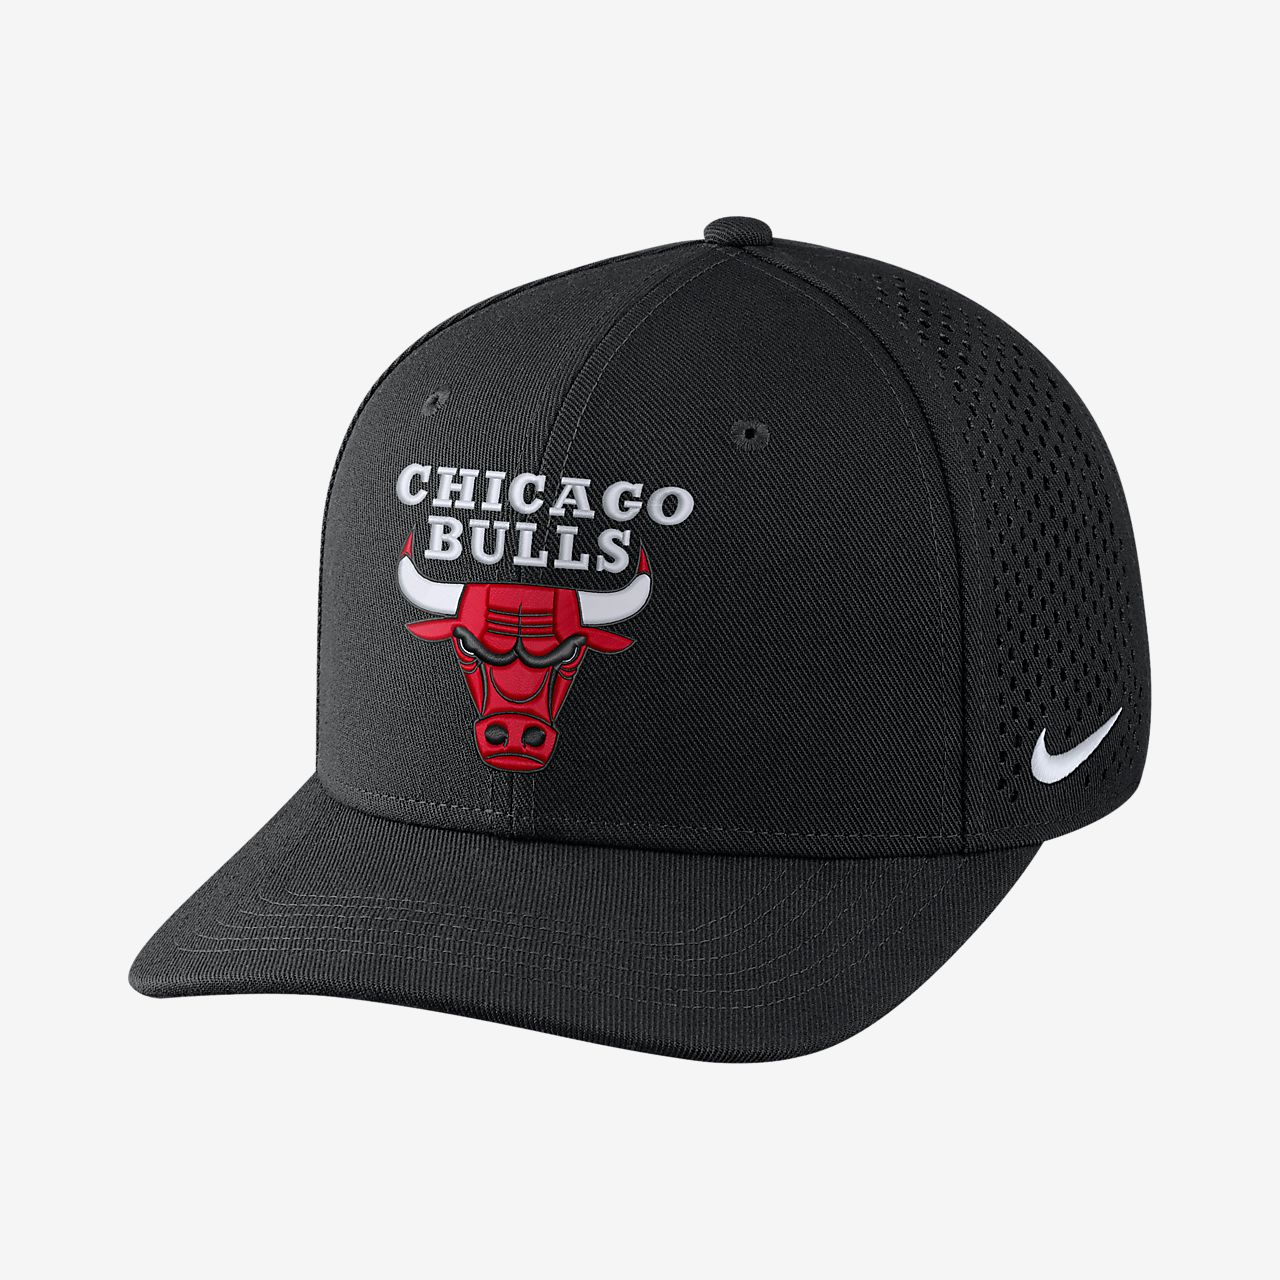 Chicago Bulls Nike AeroBill Classic99 Unisex Adjustable NBA Hat ... 6642c570658